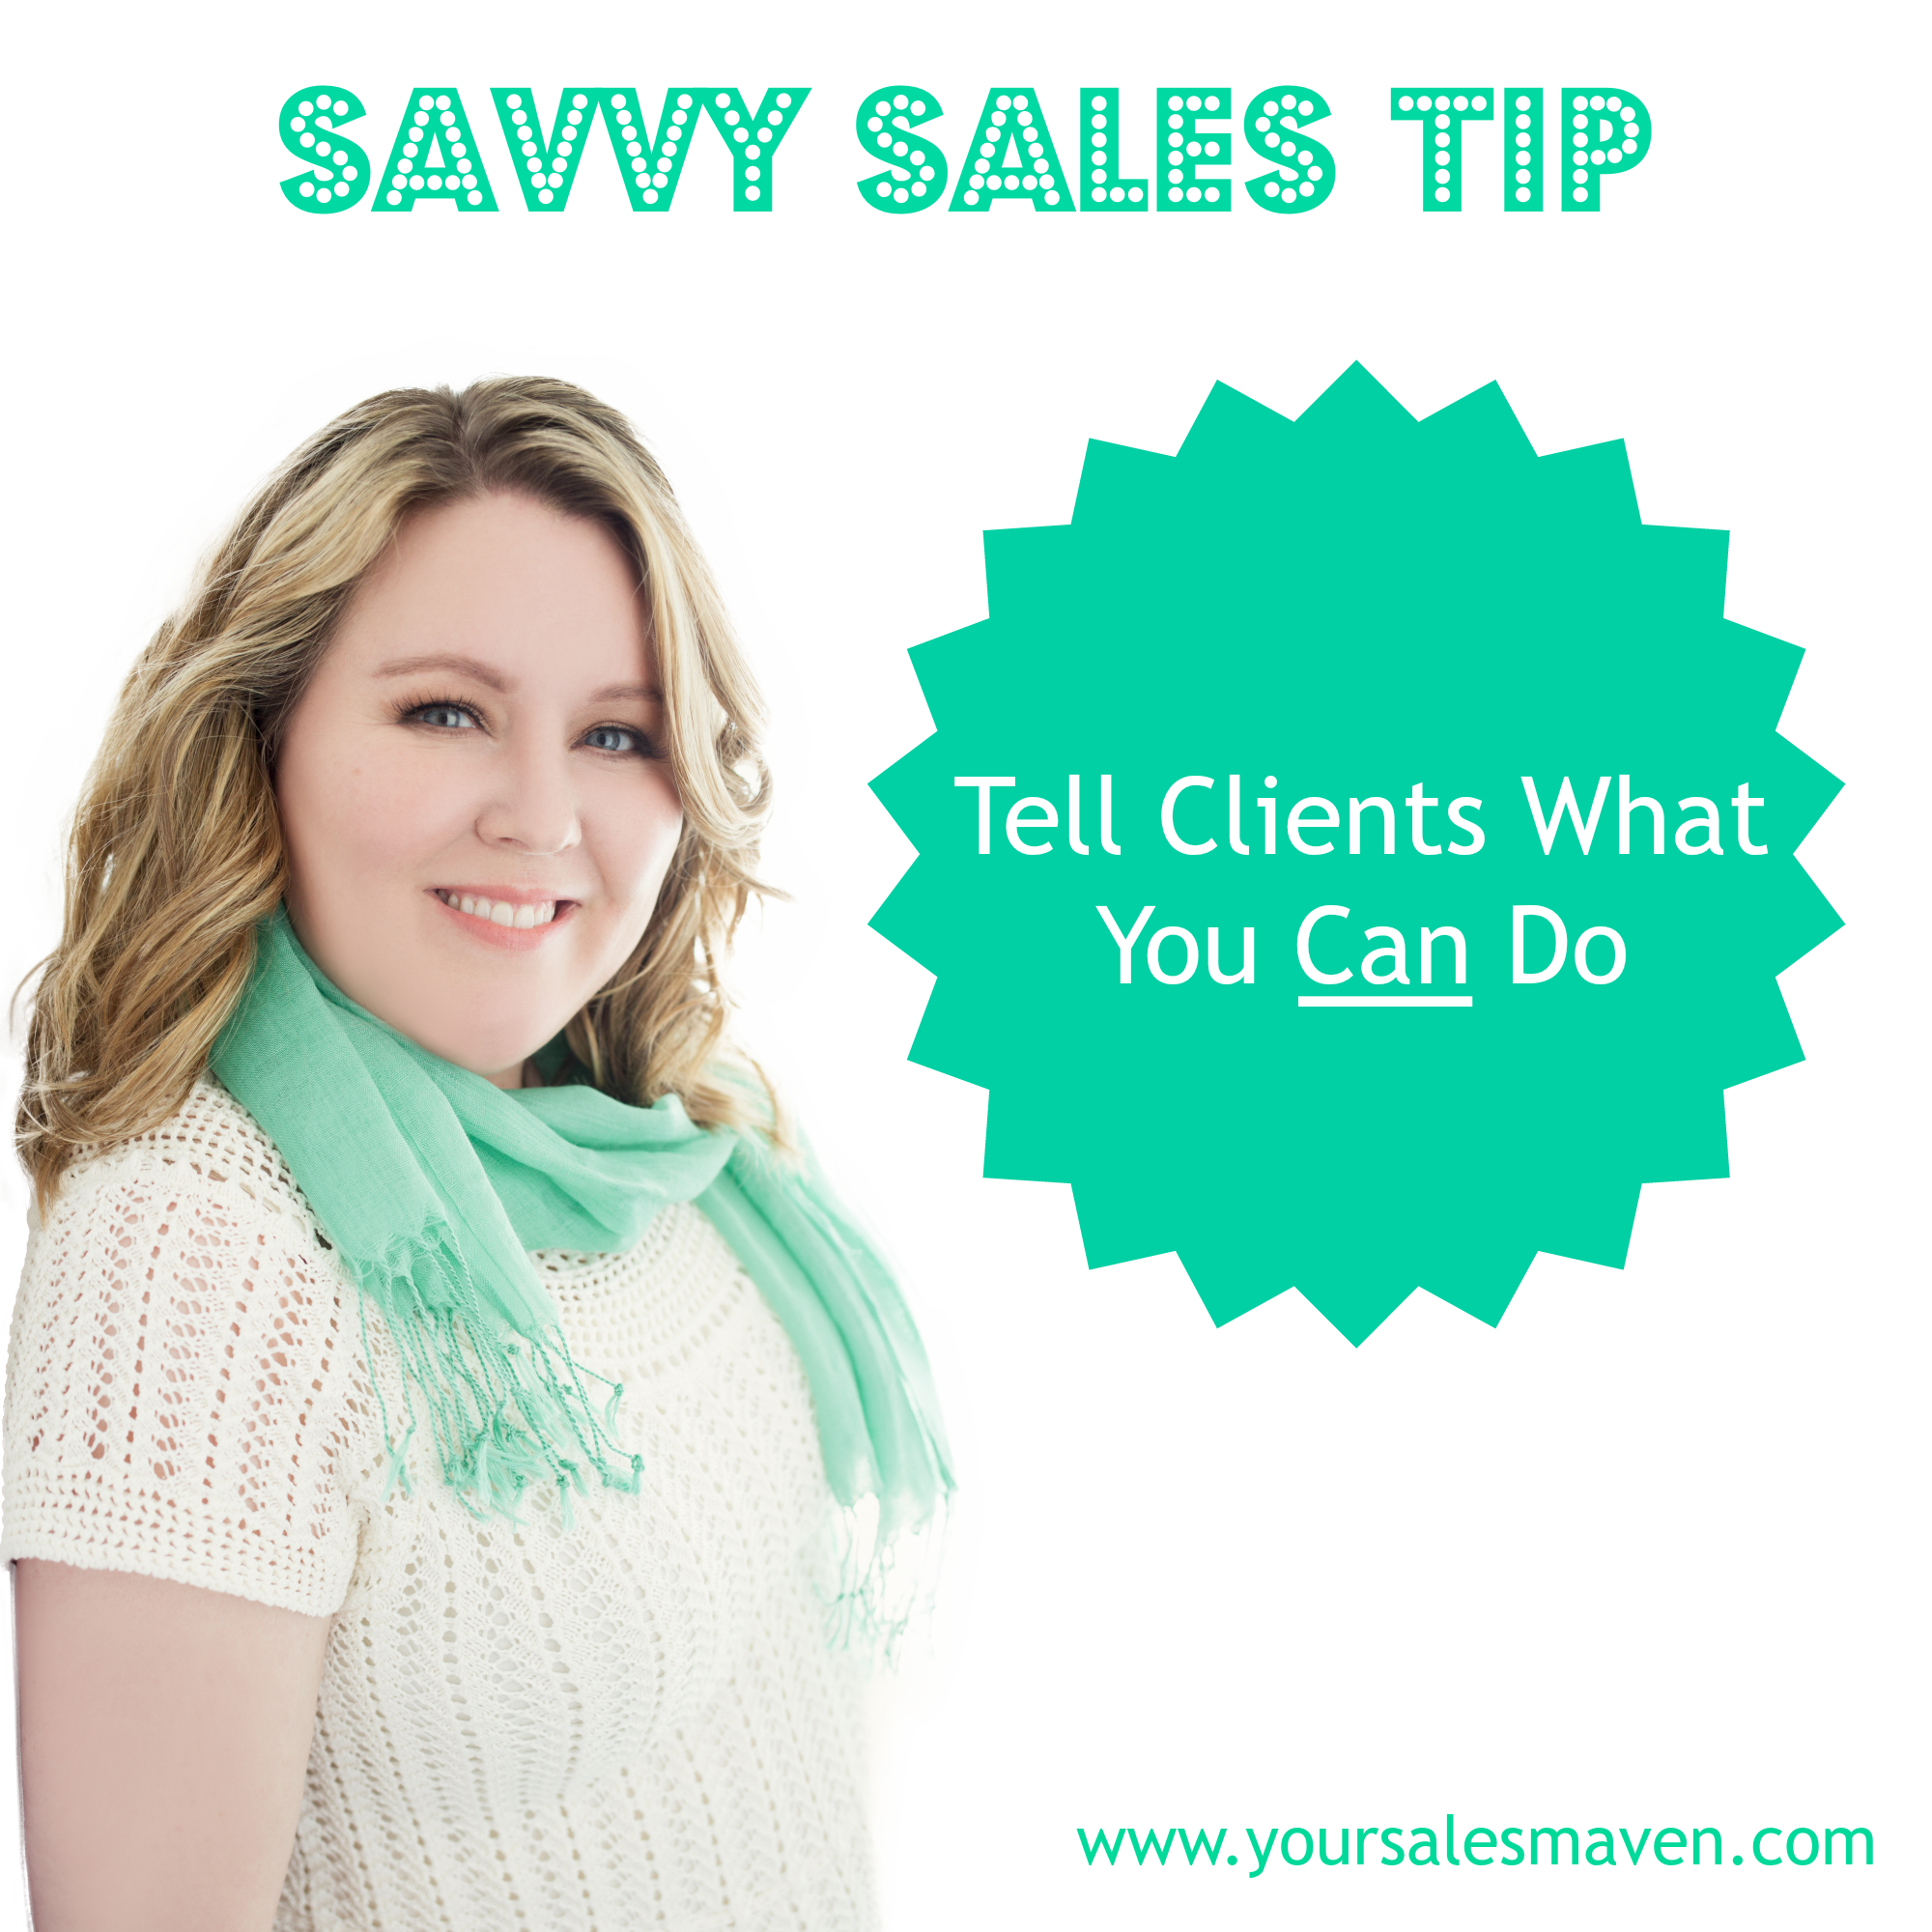 Savvy Sales Tip- Tell Clients What You Can Do